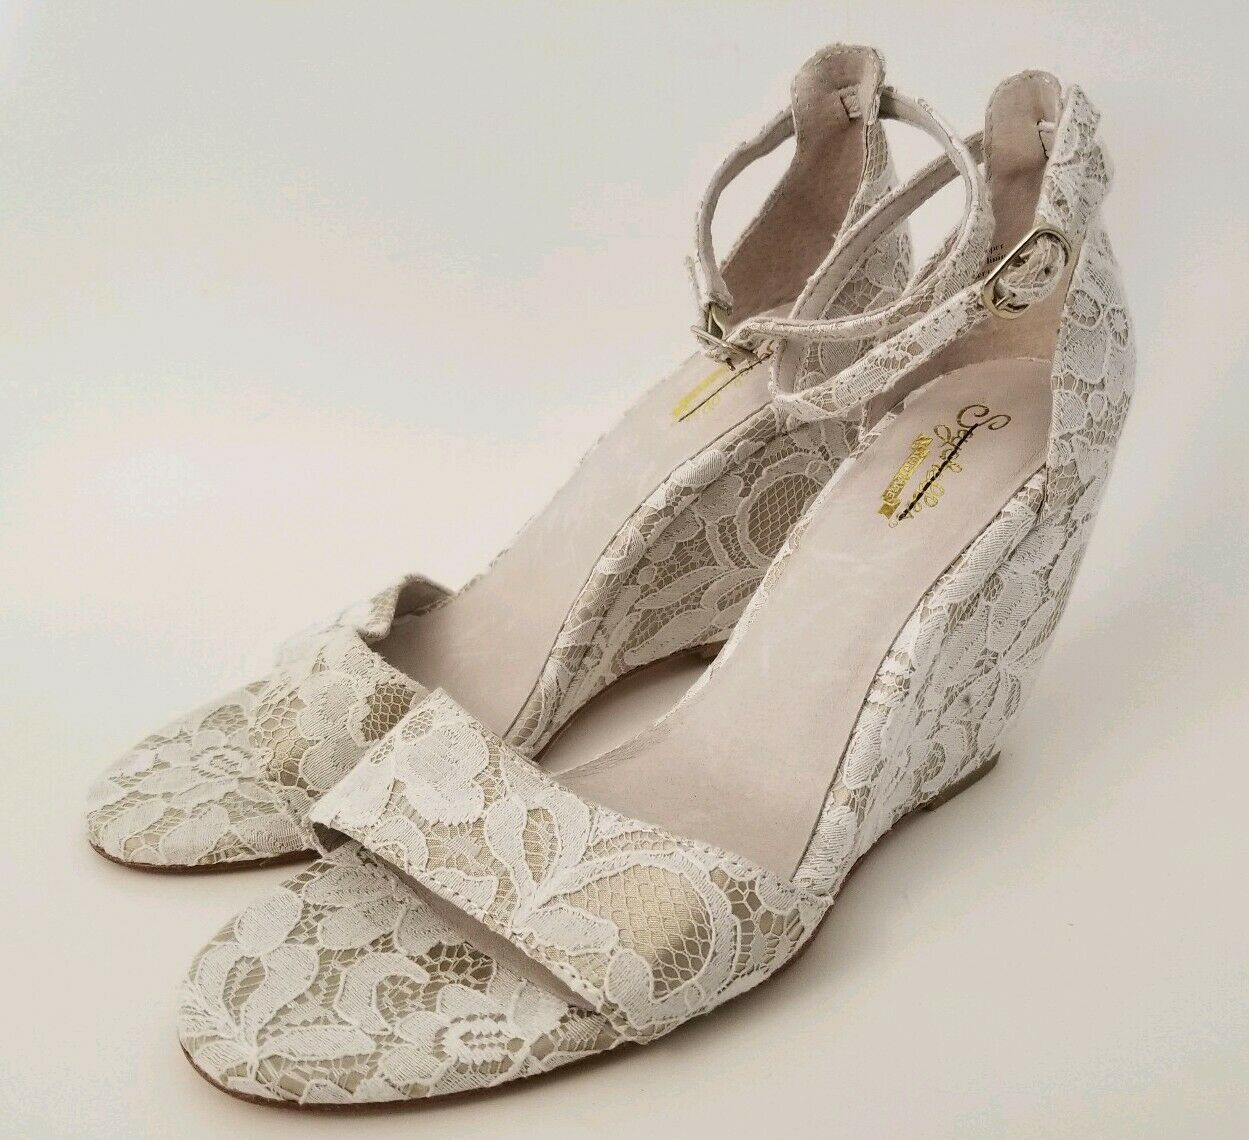 BHLDN Seychelles Phoebe Ivory Lace Wedge Heel Ankle Strap Bridal shoes 8 New